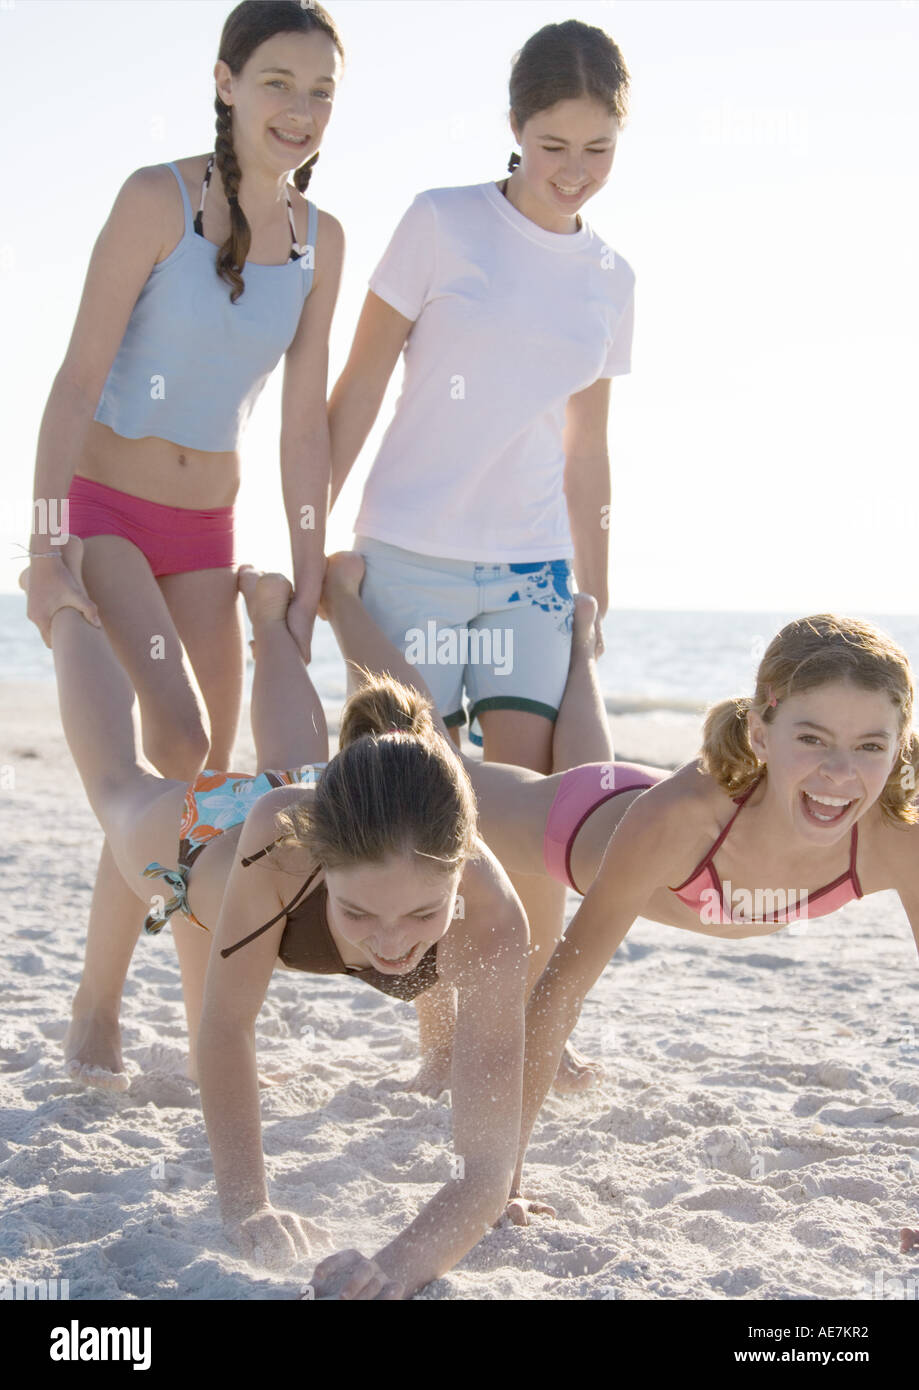 girls like feet Preteen girls holding friends' feet like wheelbarrows on beach